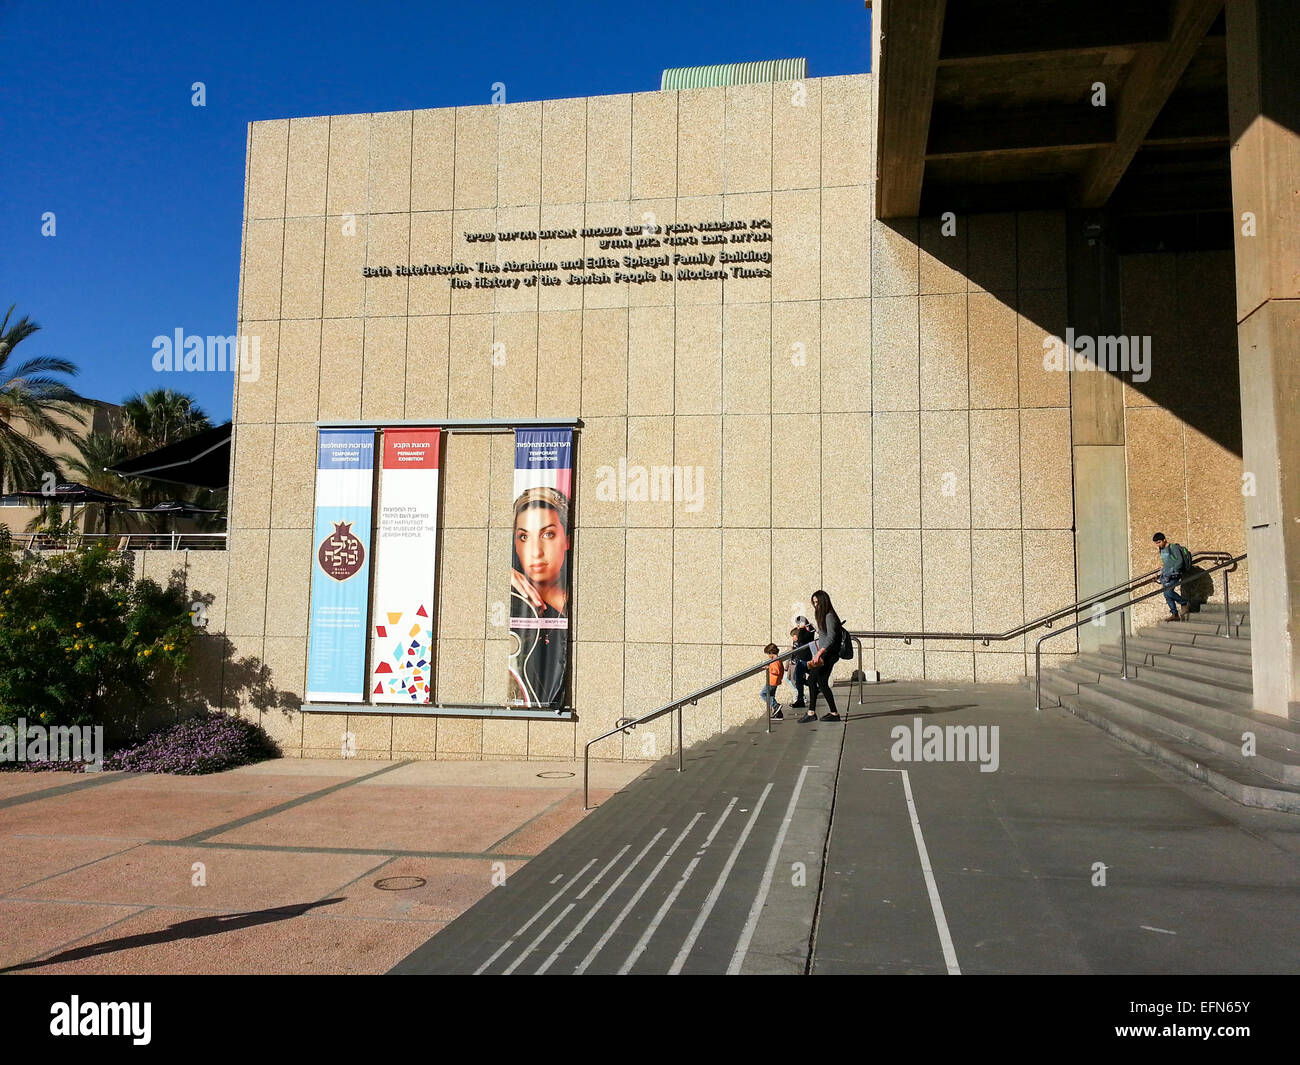 The entrance to The Diaspora museum at the Tel Aviv university, Israel - Stock Image